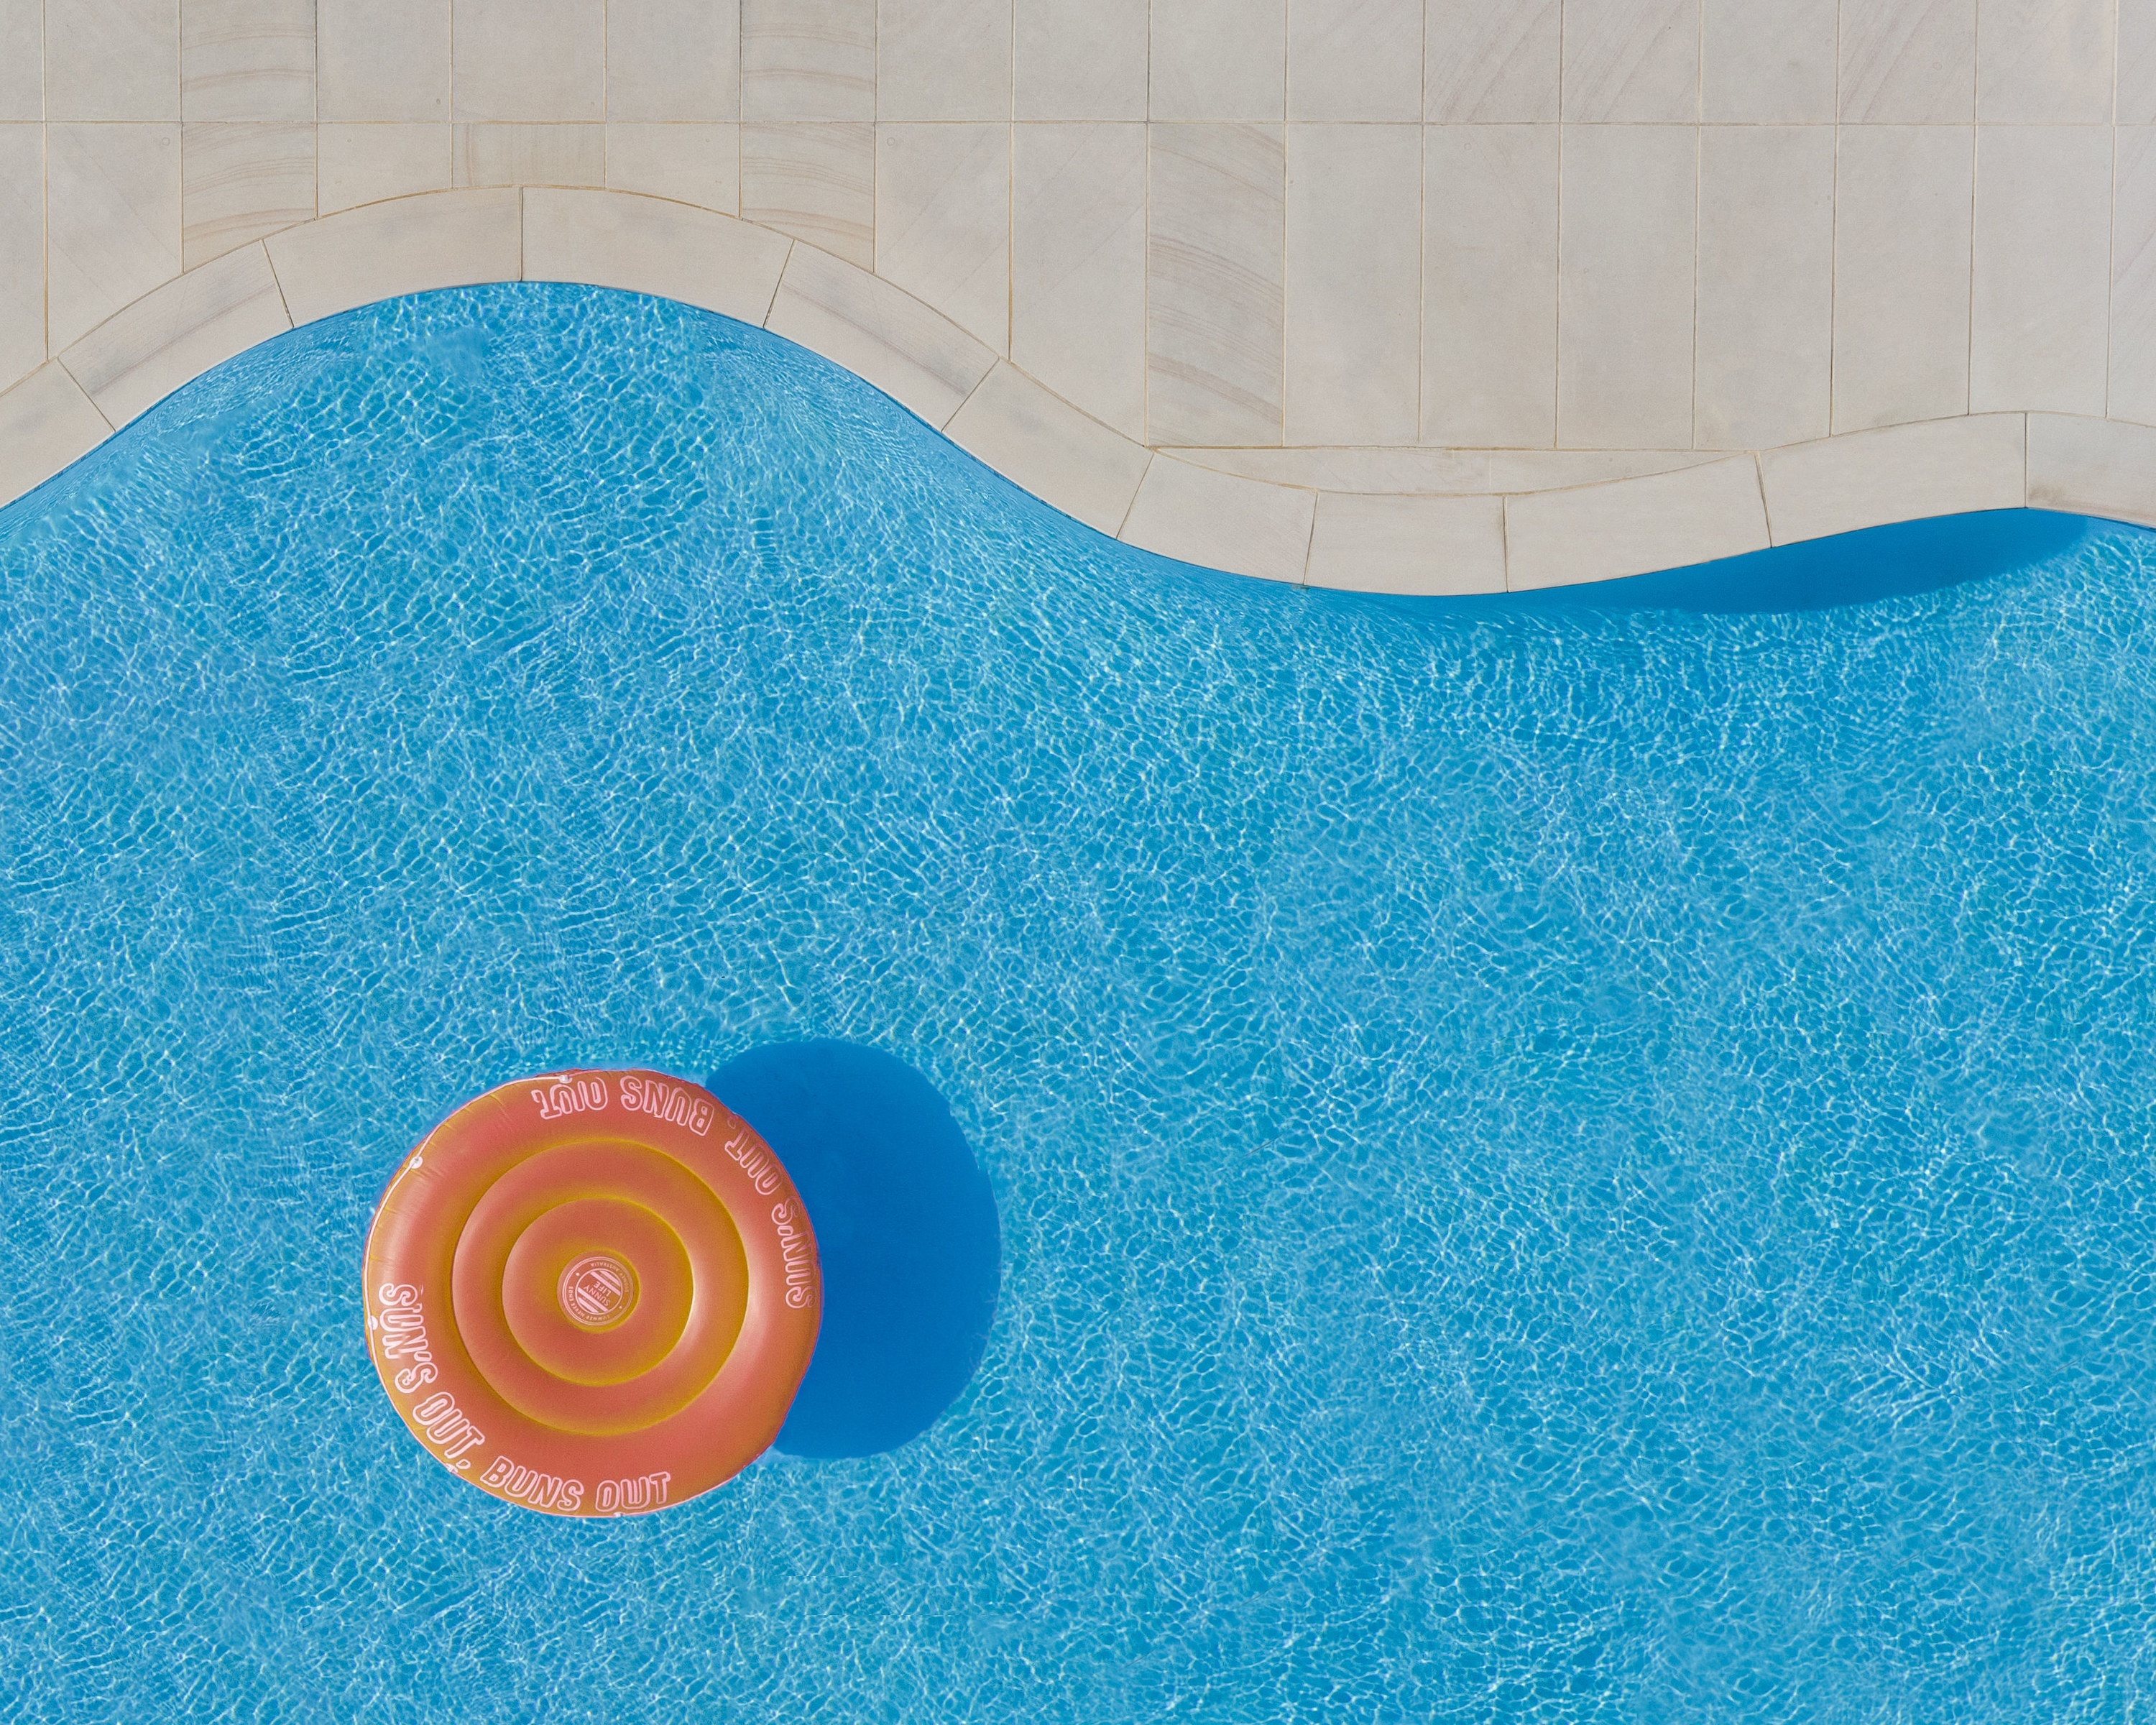 An overhead view of a doughnut shaped round floatie in a curved pool